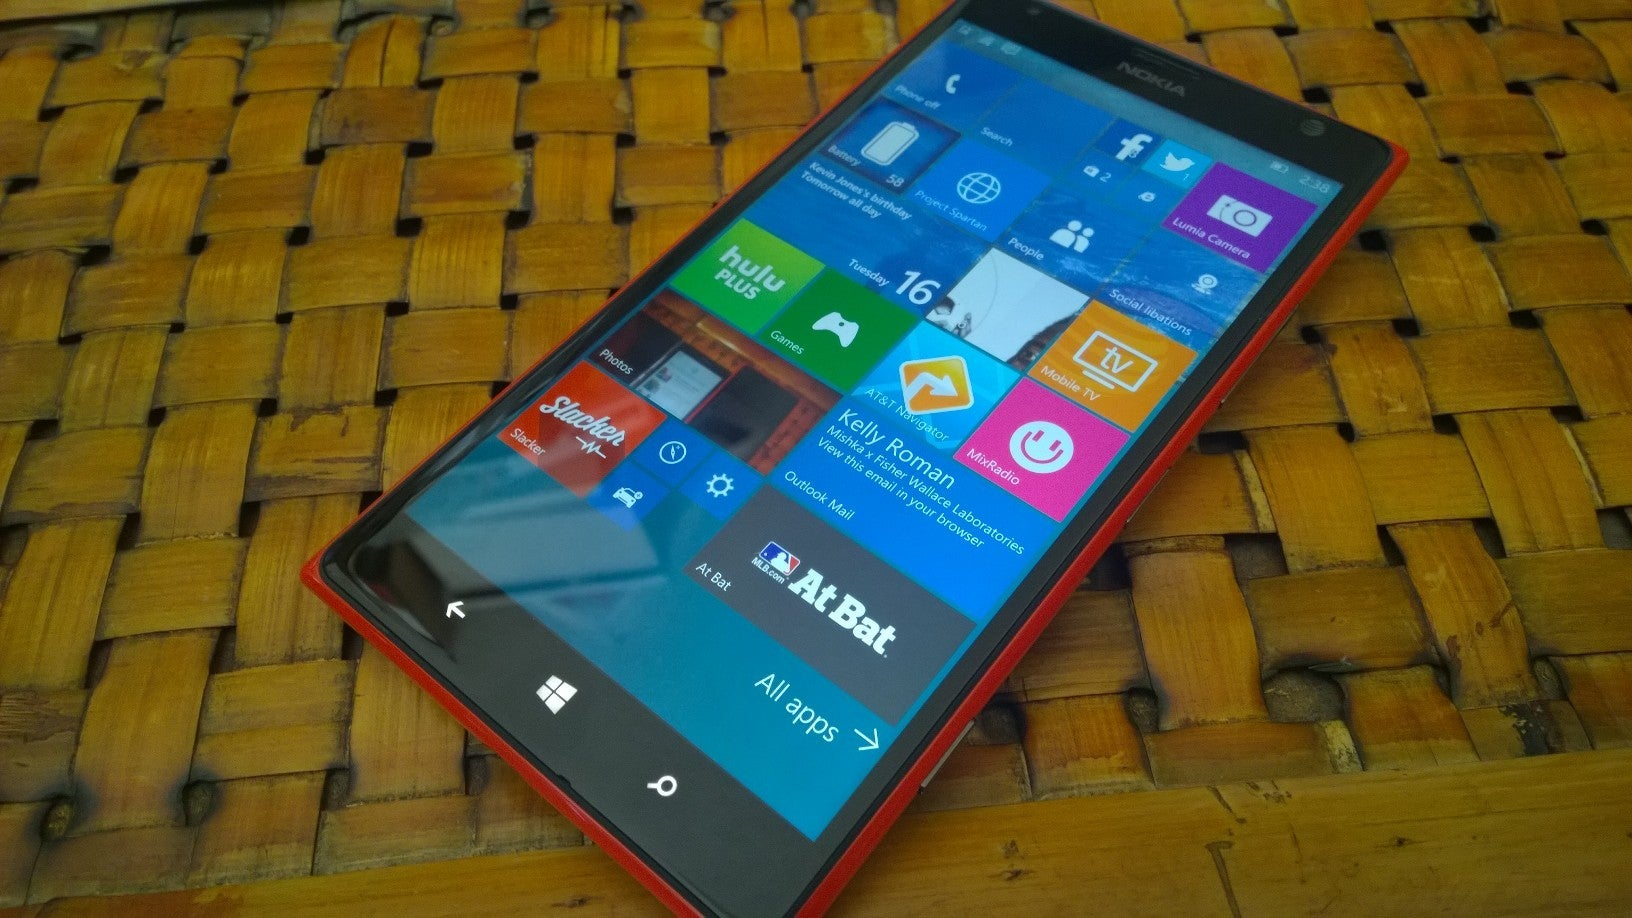 Windows 10 phones at t 2015 - Rumor Long Delayed Rollout Of Windows 10 For Older Phones Could Happen Thursday Pcworld